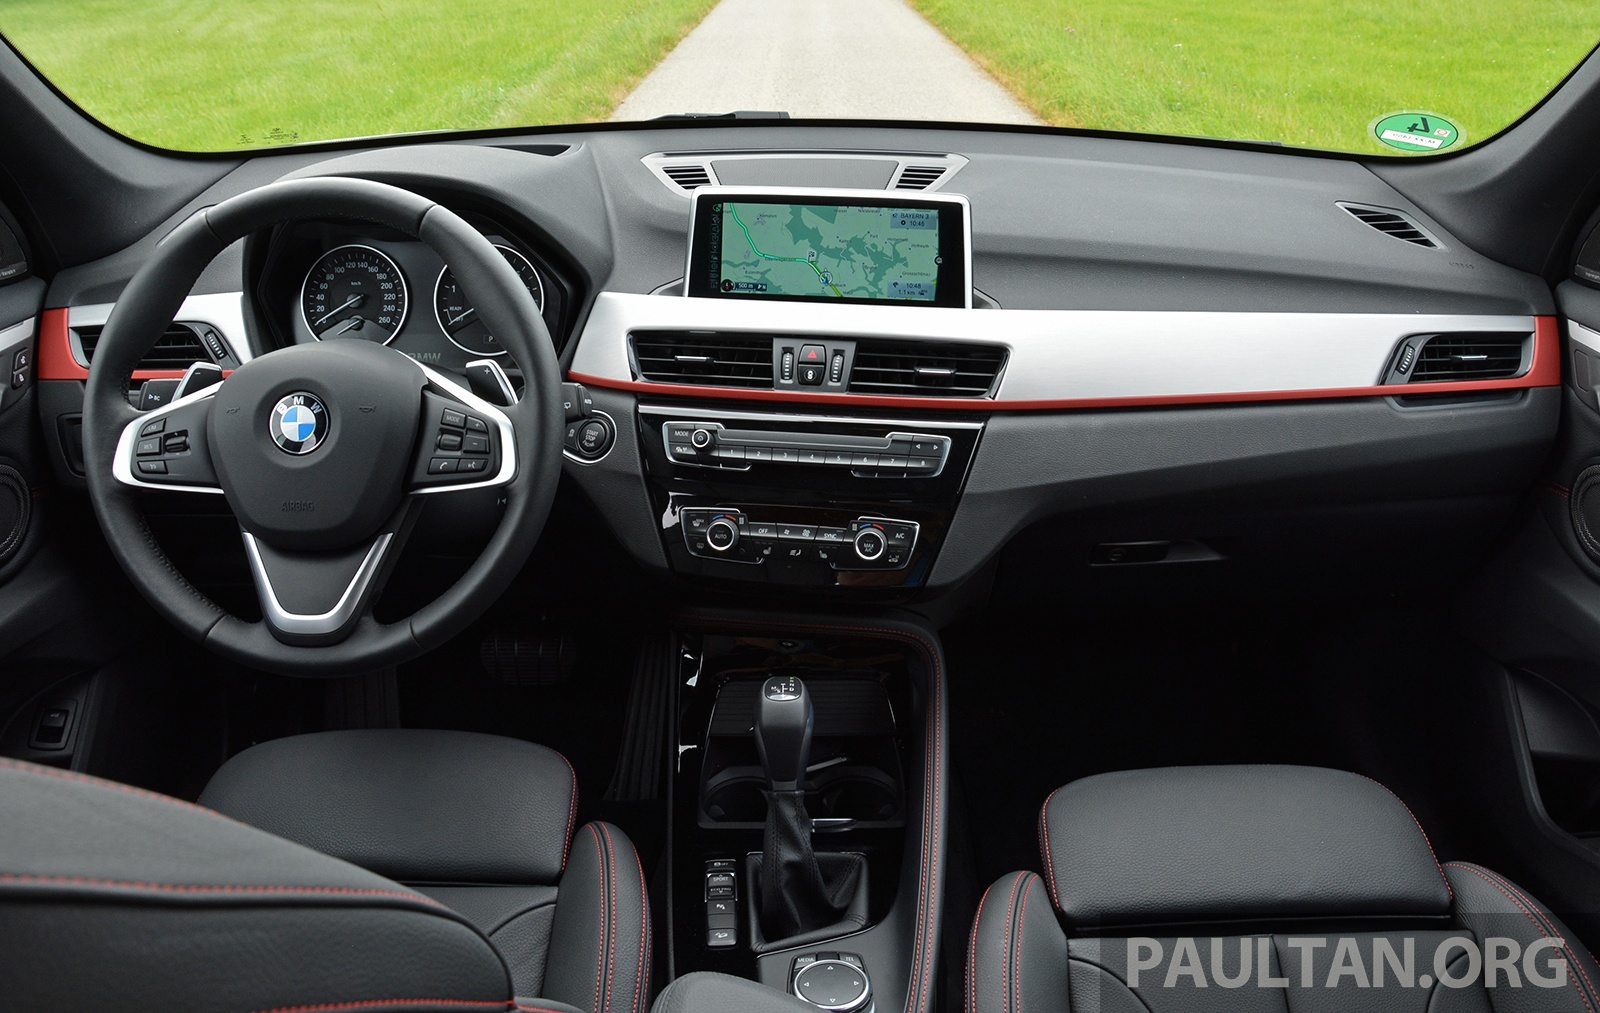 driven 2016 f48 bmw x1 the one to rule them all paul tan image 359369. Black Bedroom Furniture Sets. Home Design Ideas